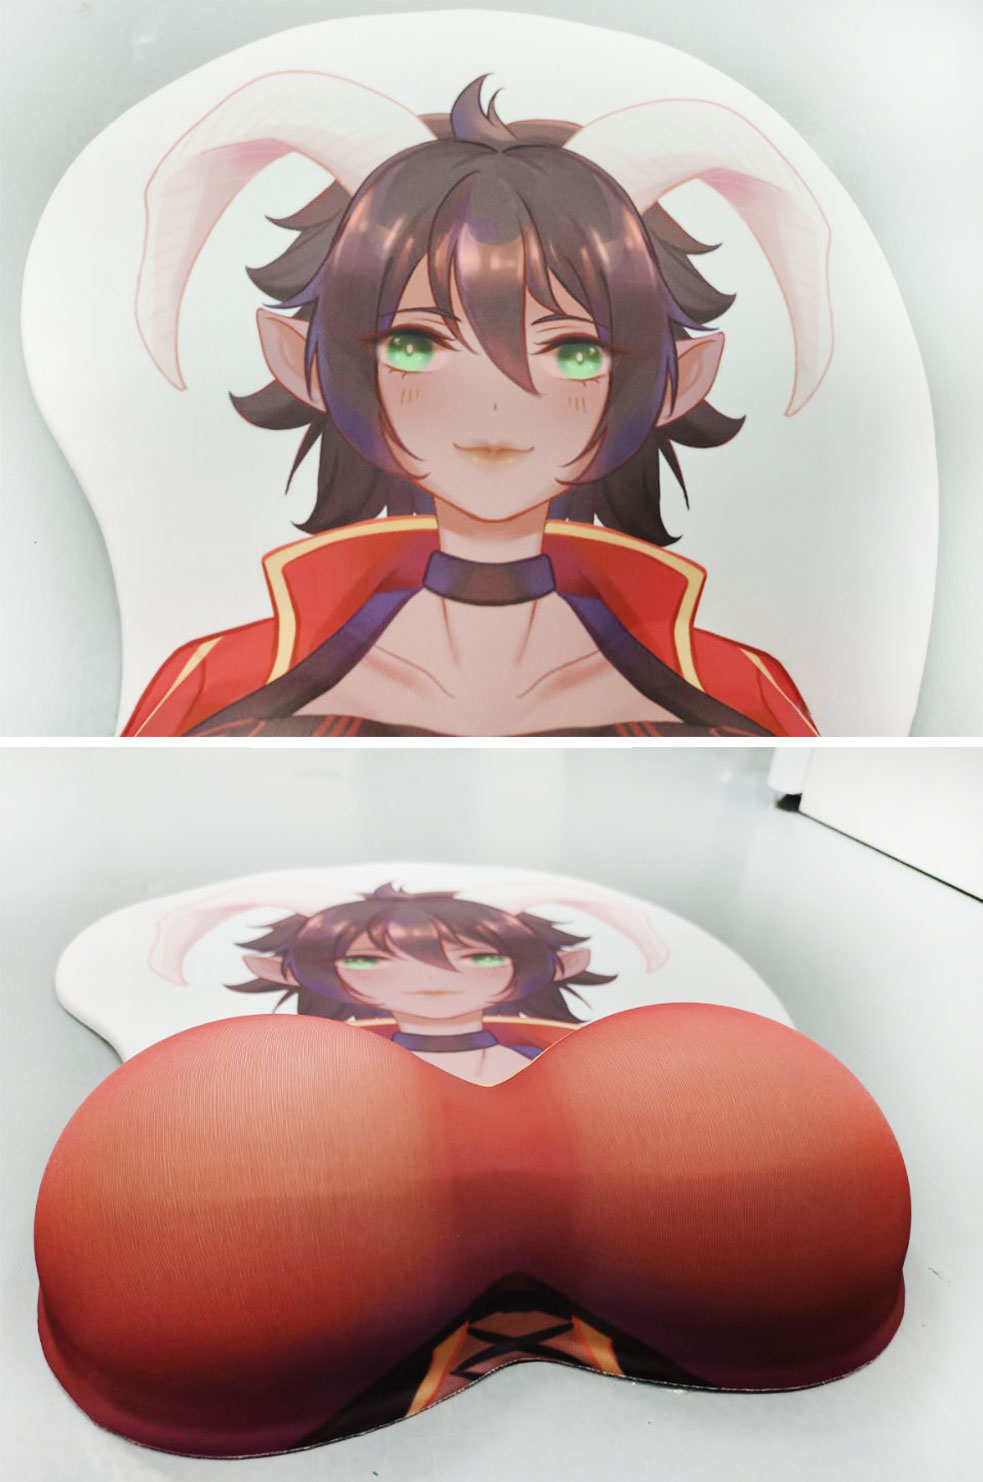 cheshire life size oppai mousepad cheshire giant oppai mouse pad 4764 - Anime Mousepads